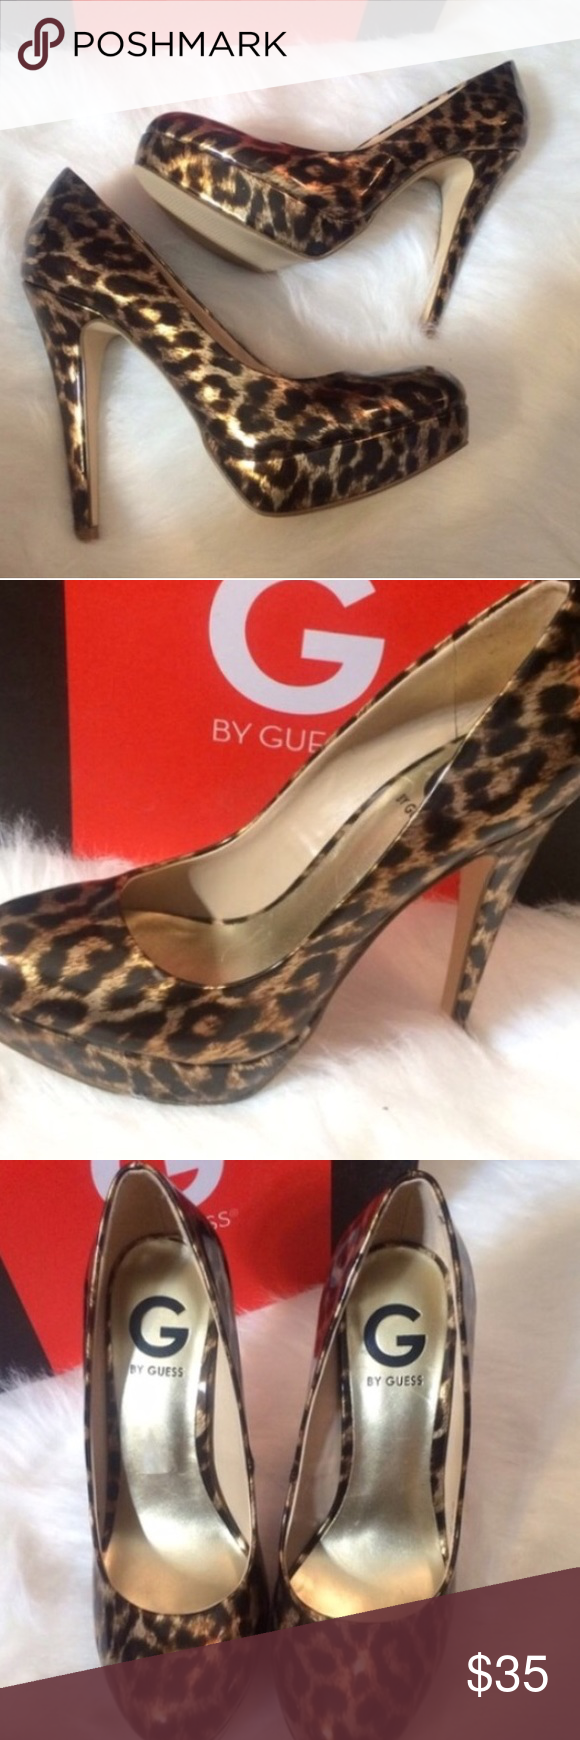 Guess animal print heels Brand new in box GUESS Shoes